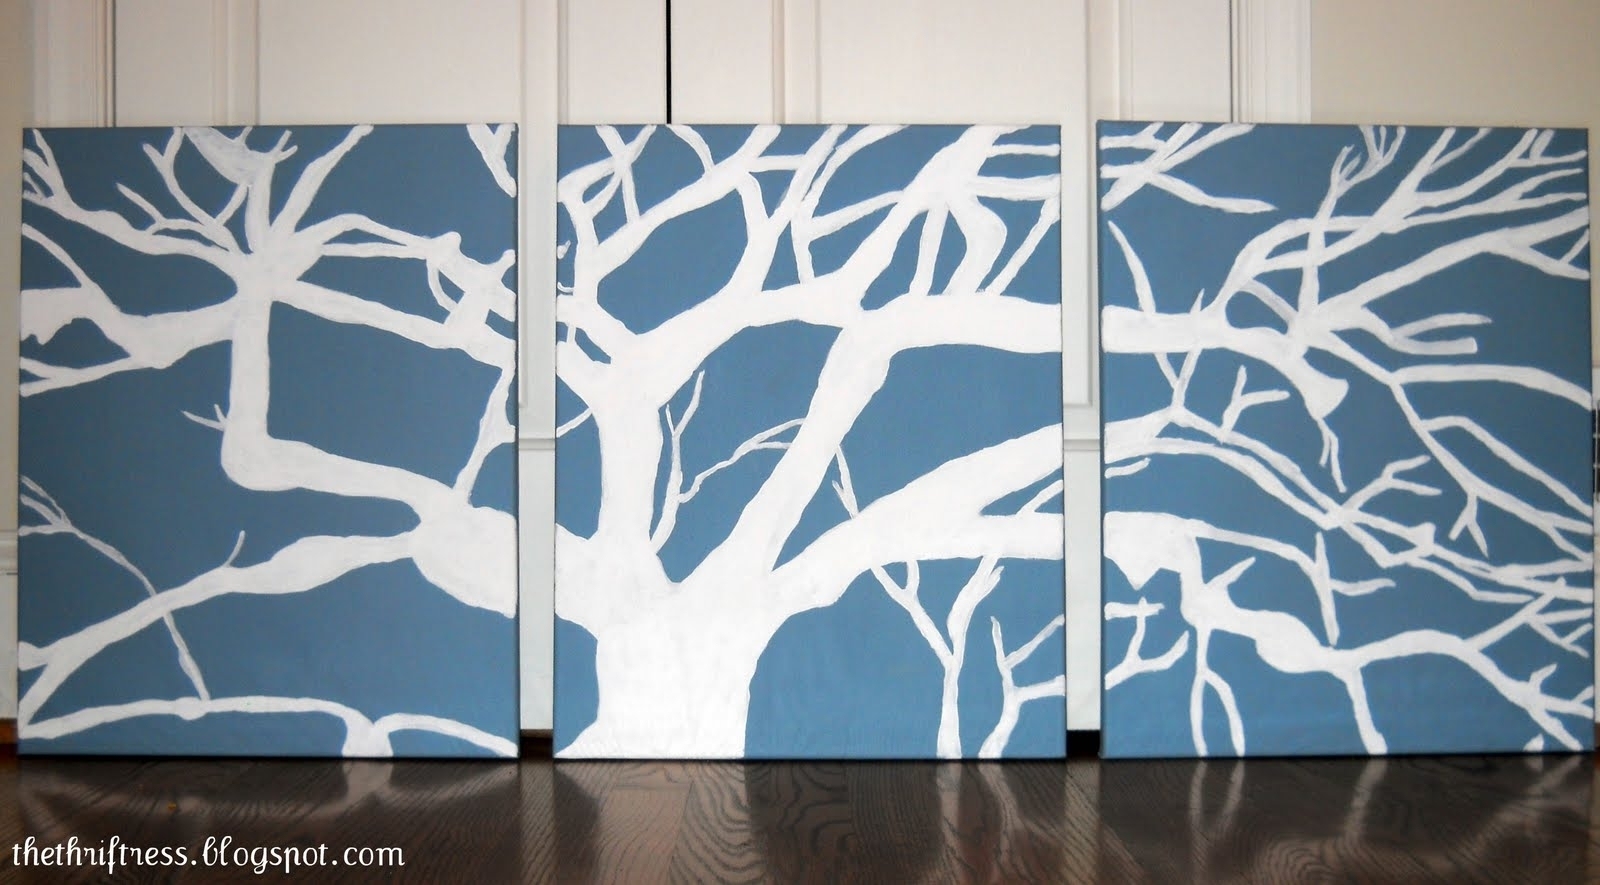 Diy Wall Art Stencils Paint Fabric – Dma Homes | #37854 Intended For Latest Textured Fabric Wall Art (View 3 of 15)